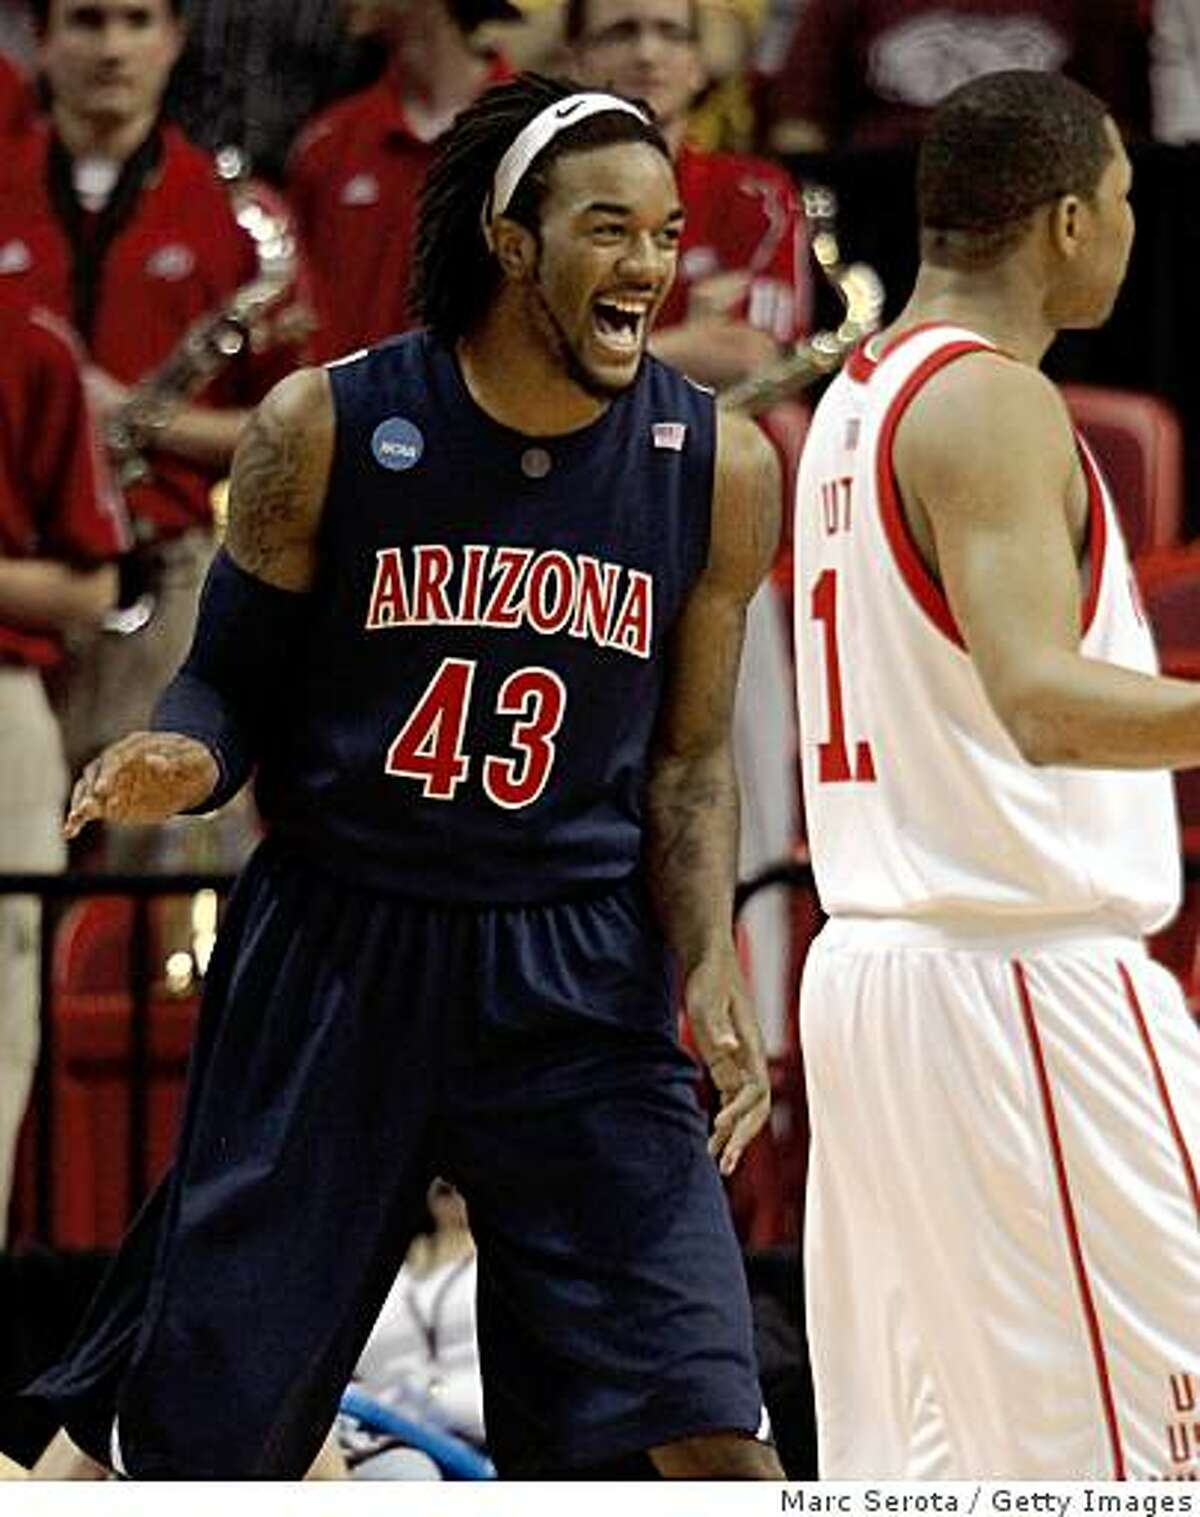 MIAMI - MARCH 20: Forward Jordan Hill #43 of the University of Arizona Wildcats celebrates a three point play over University of Utah Runnin' Utes during the first round of the NCAA Division I Men's Basketball Tournament at the American Airlines Arena on March 20, 2009 in Miami, Florida. (Photo by Marc Serota/Getty Images)